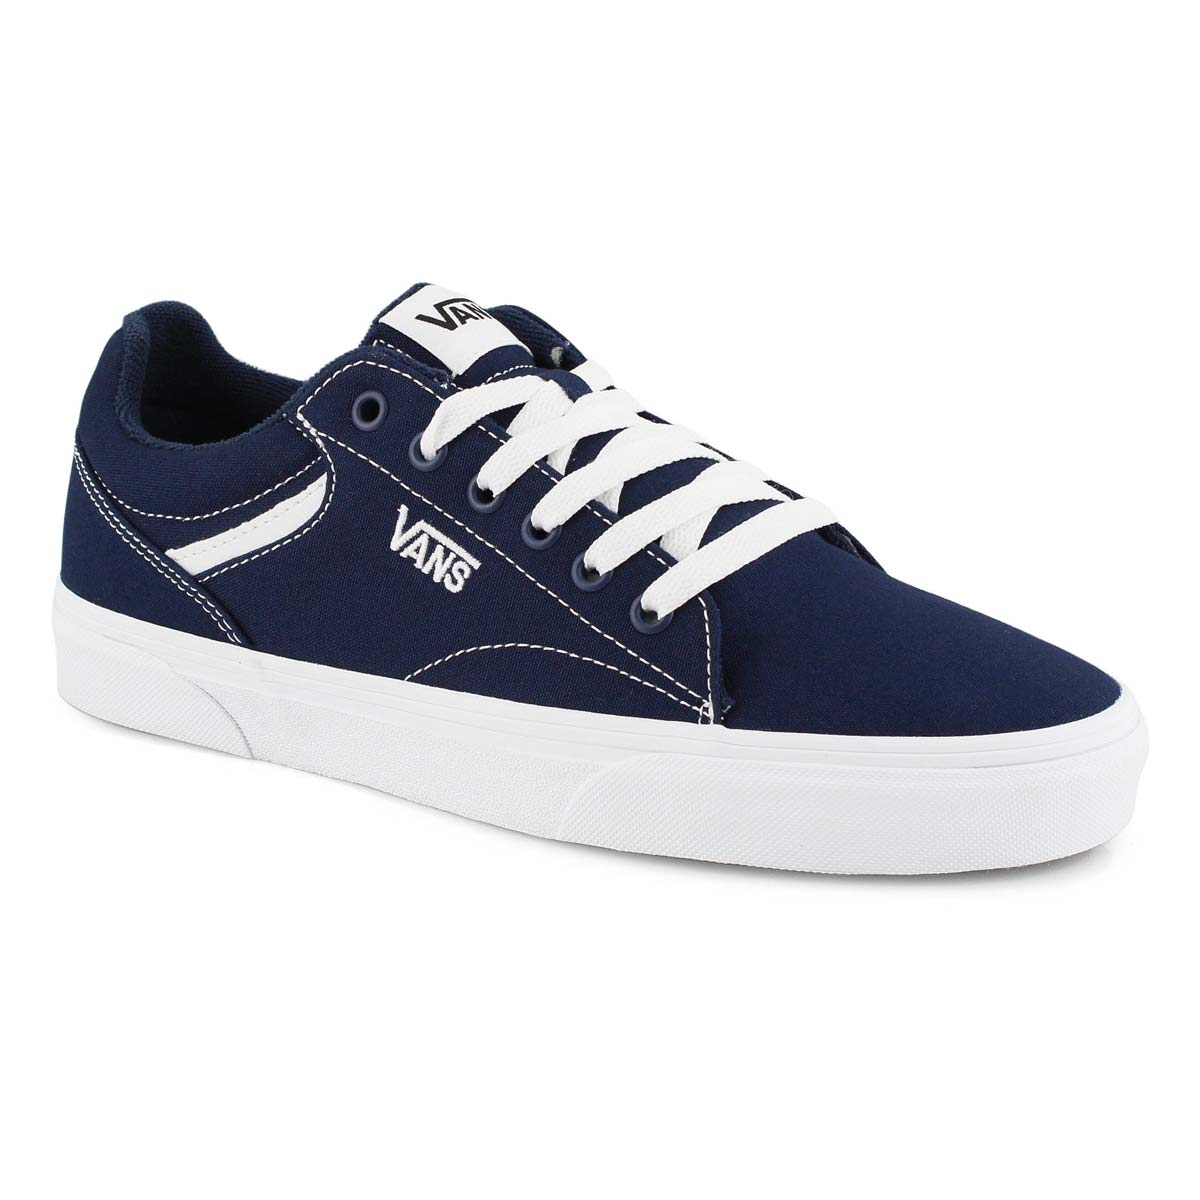 Vans Men's Seldan Canvas Shoes - Dress Blues/White SP-Footwear-Mens Vans